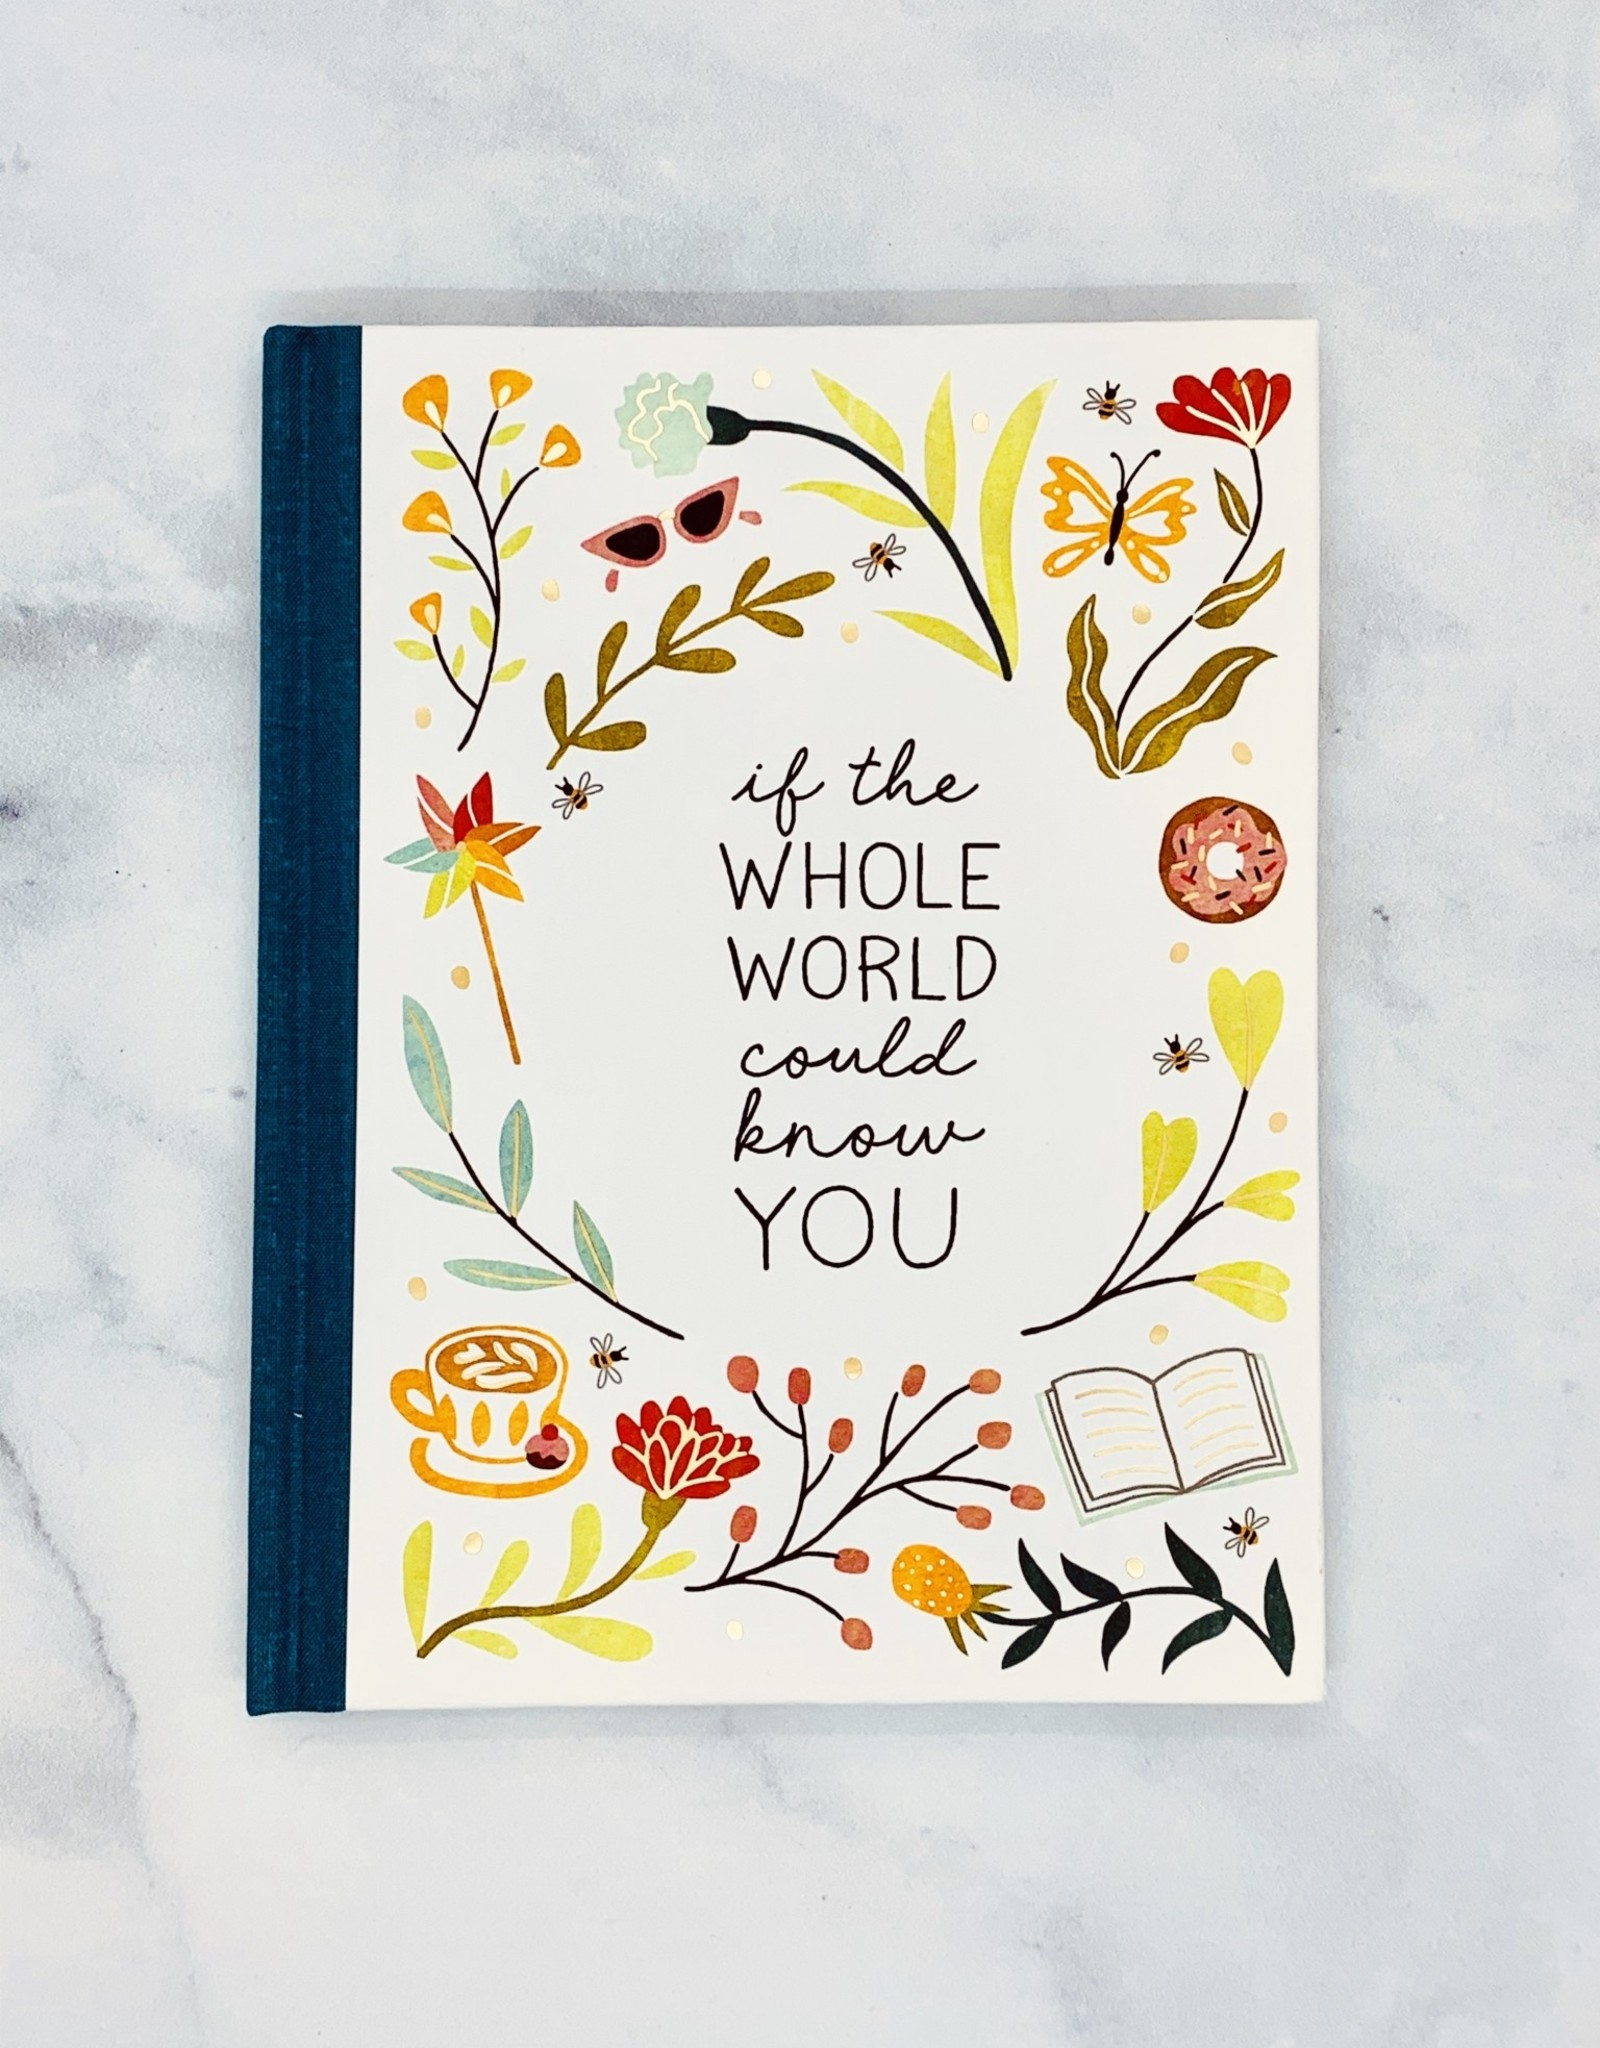 Compendium If the Whole World Could Know You Gift Book